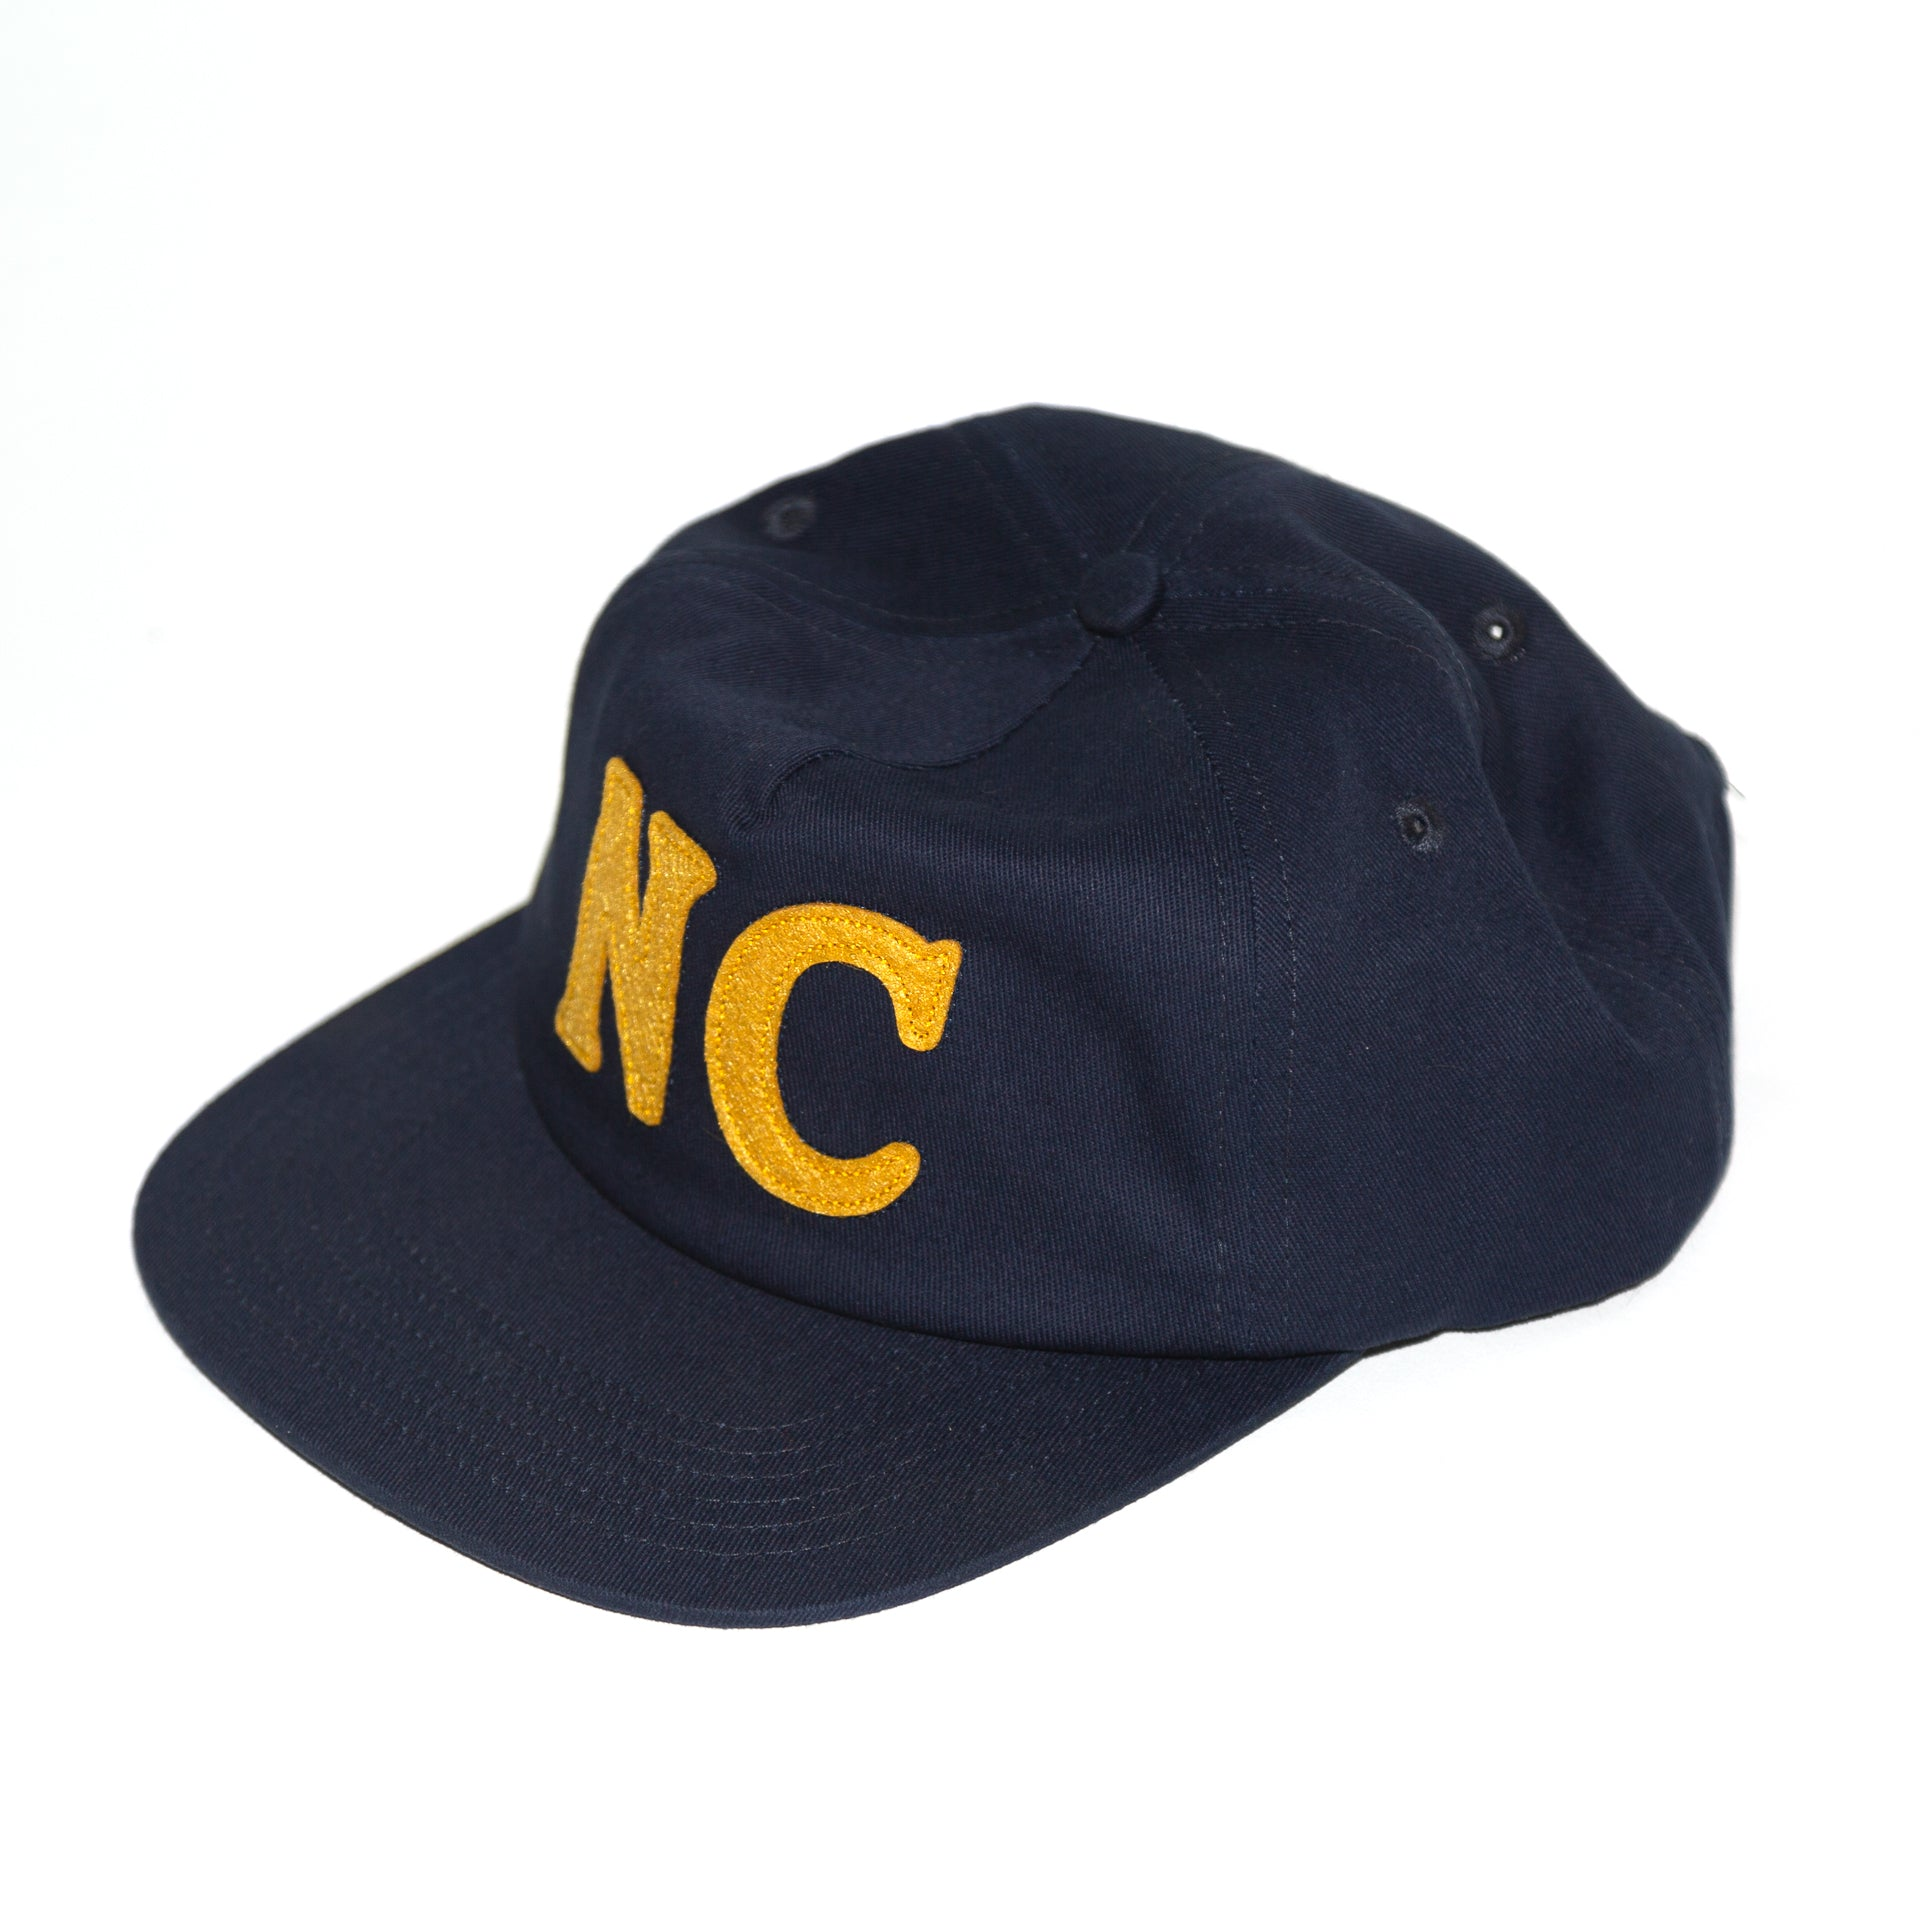 Tar Heel Hat - Navy - Apparel and Accessories - Prism Supply